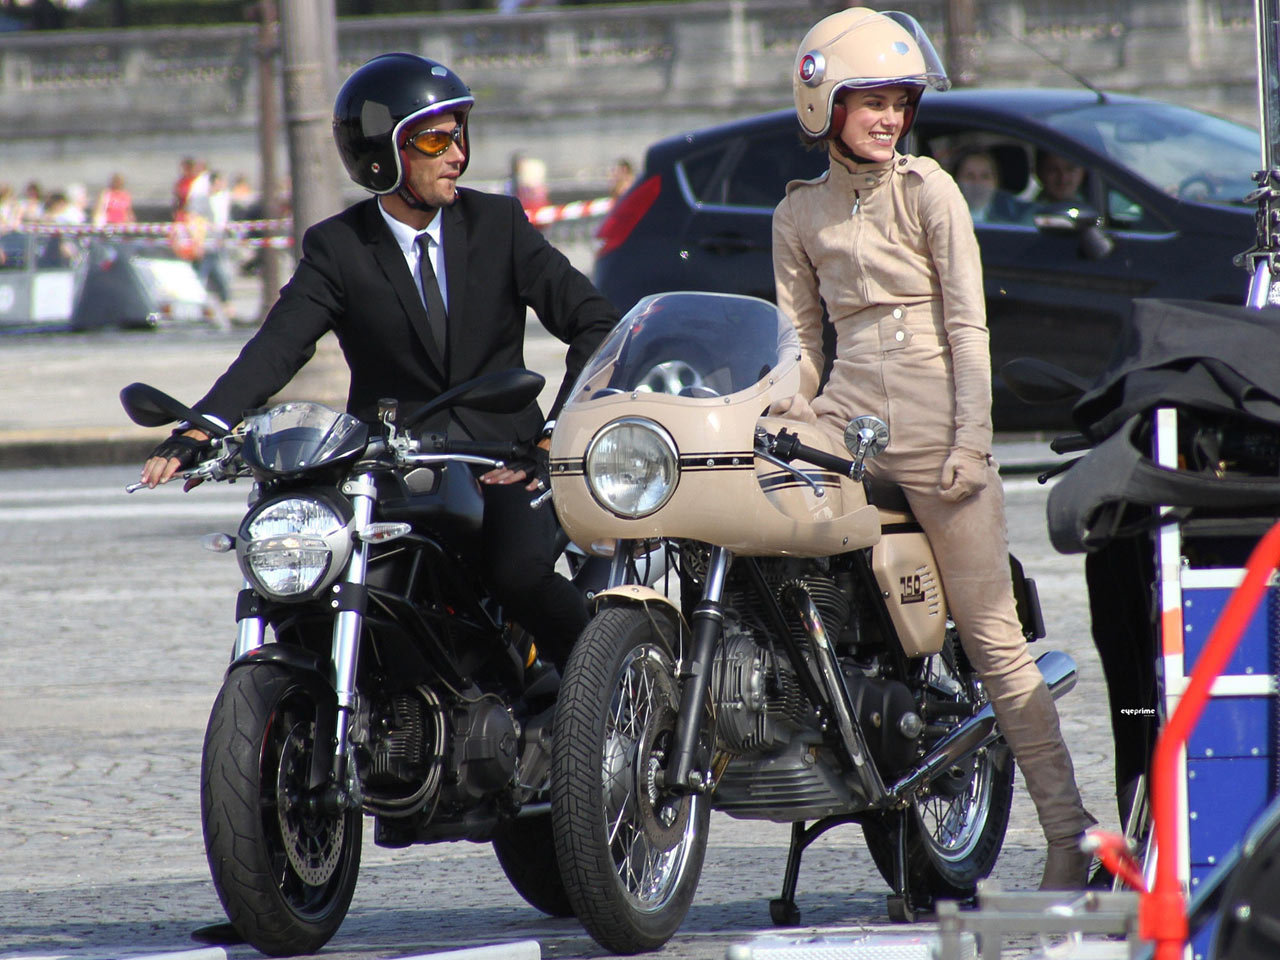 Takeyoshi Images Keira Knightley With Ducati 750ss